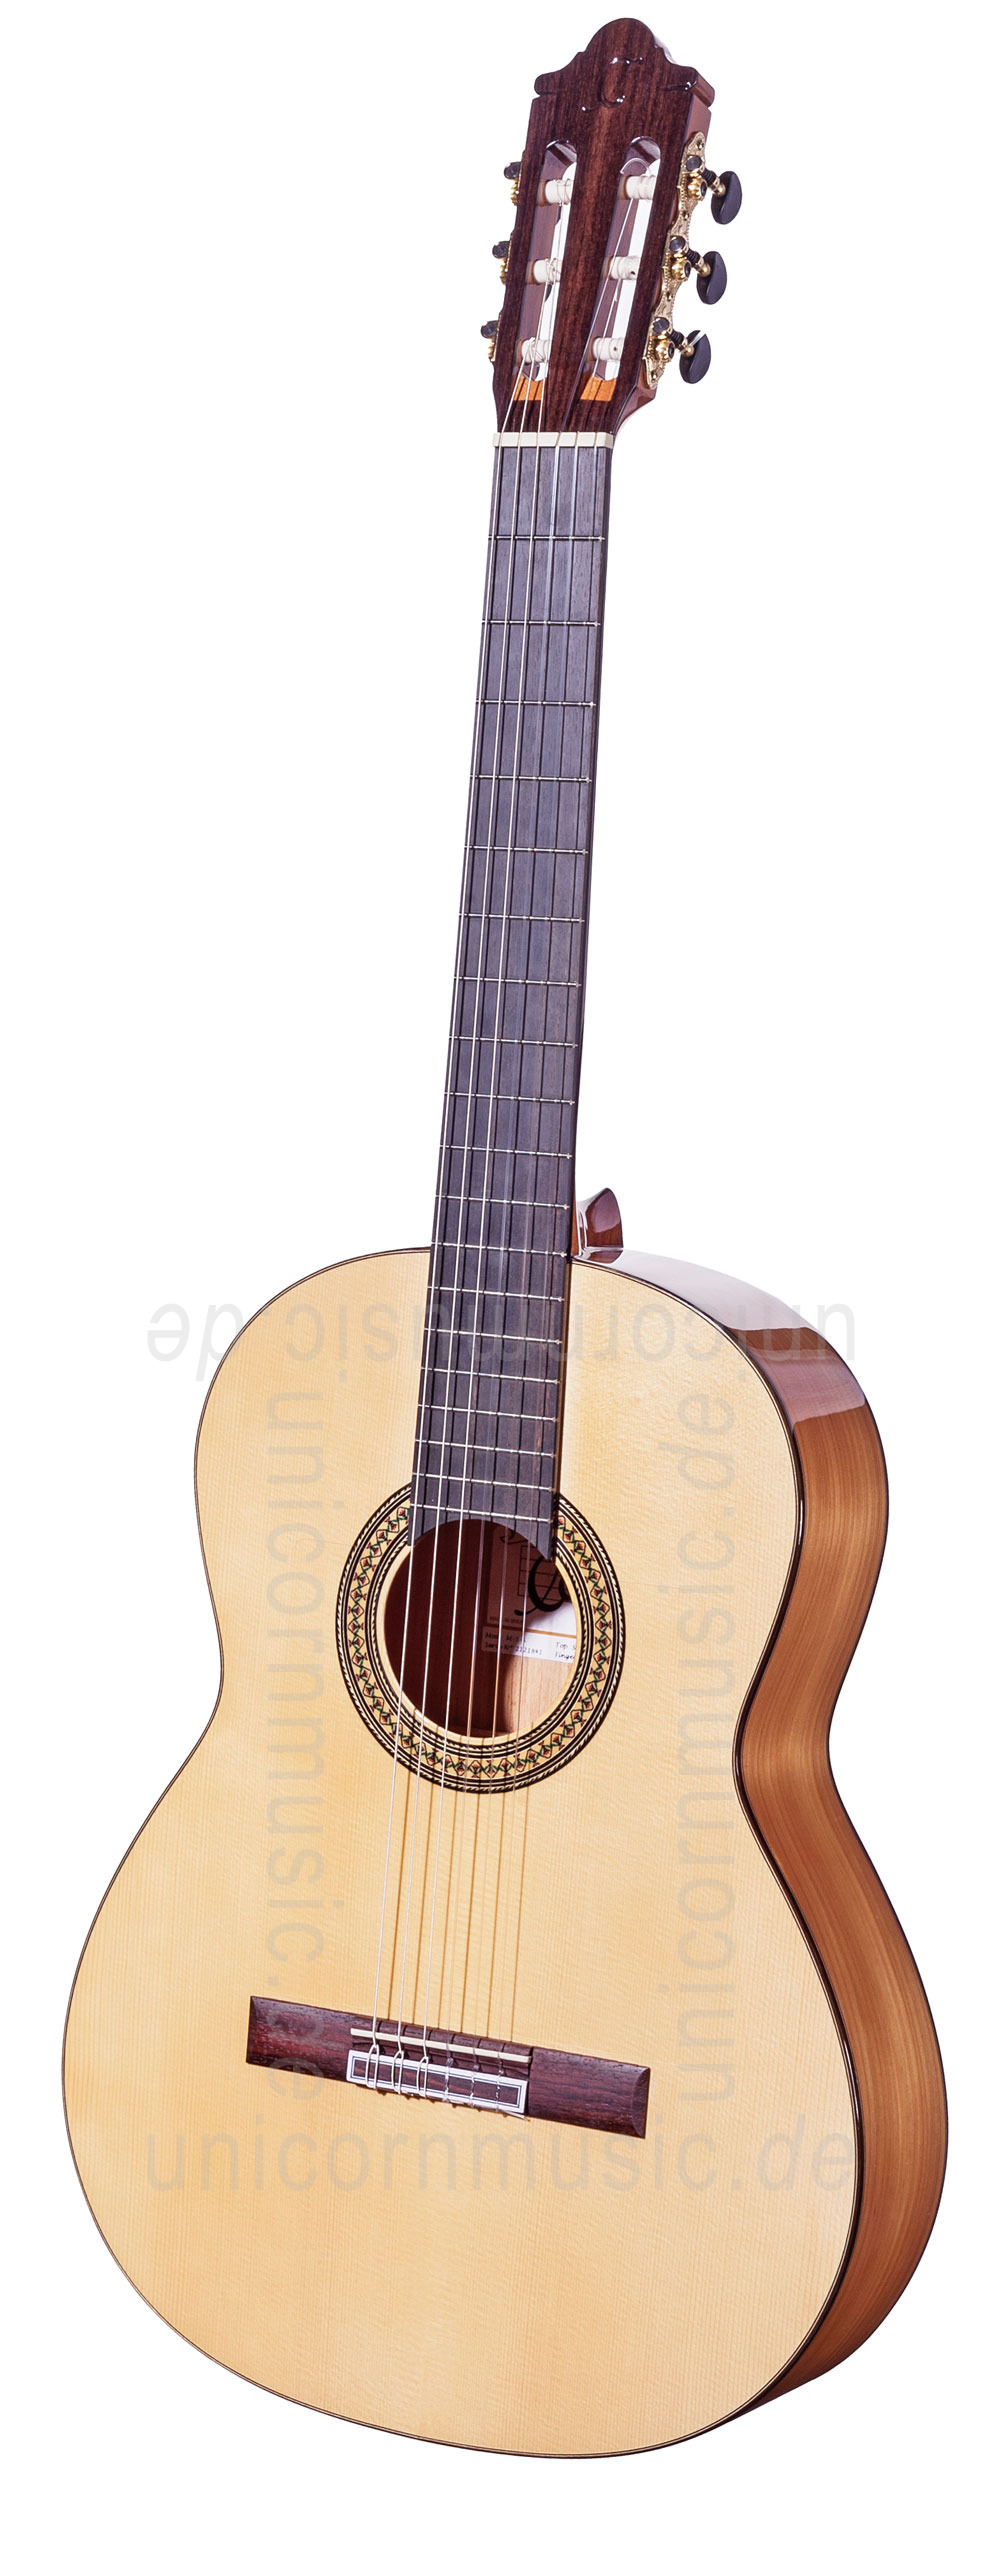 to article description / price Spanish Flamenco Guitar CAMPS M5-S (blanca) - solid spruce top - Sandalwood